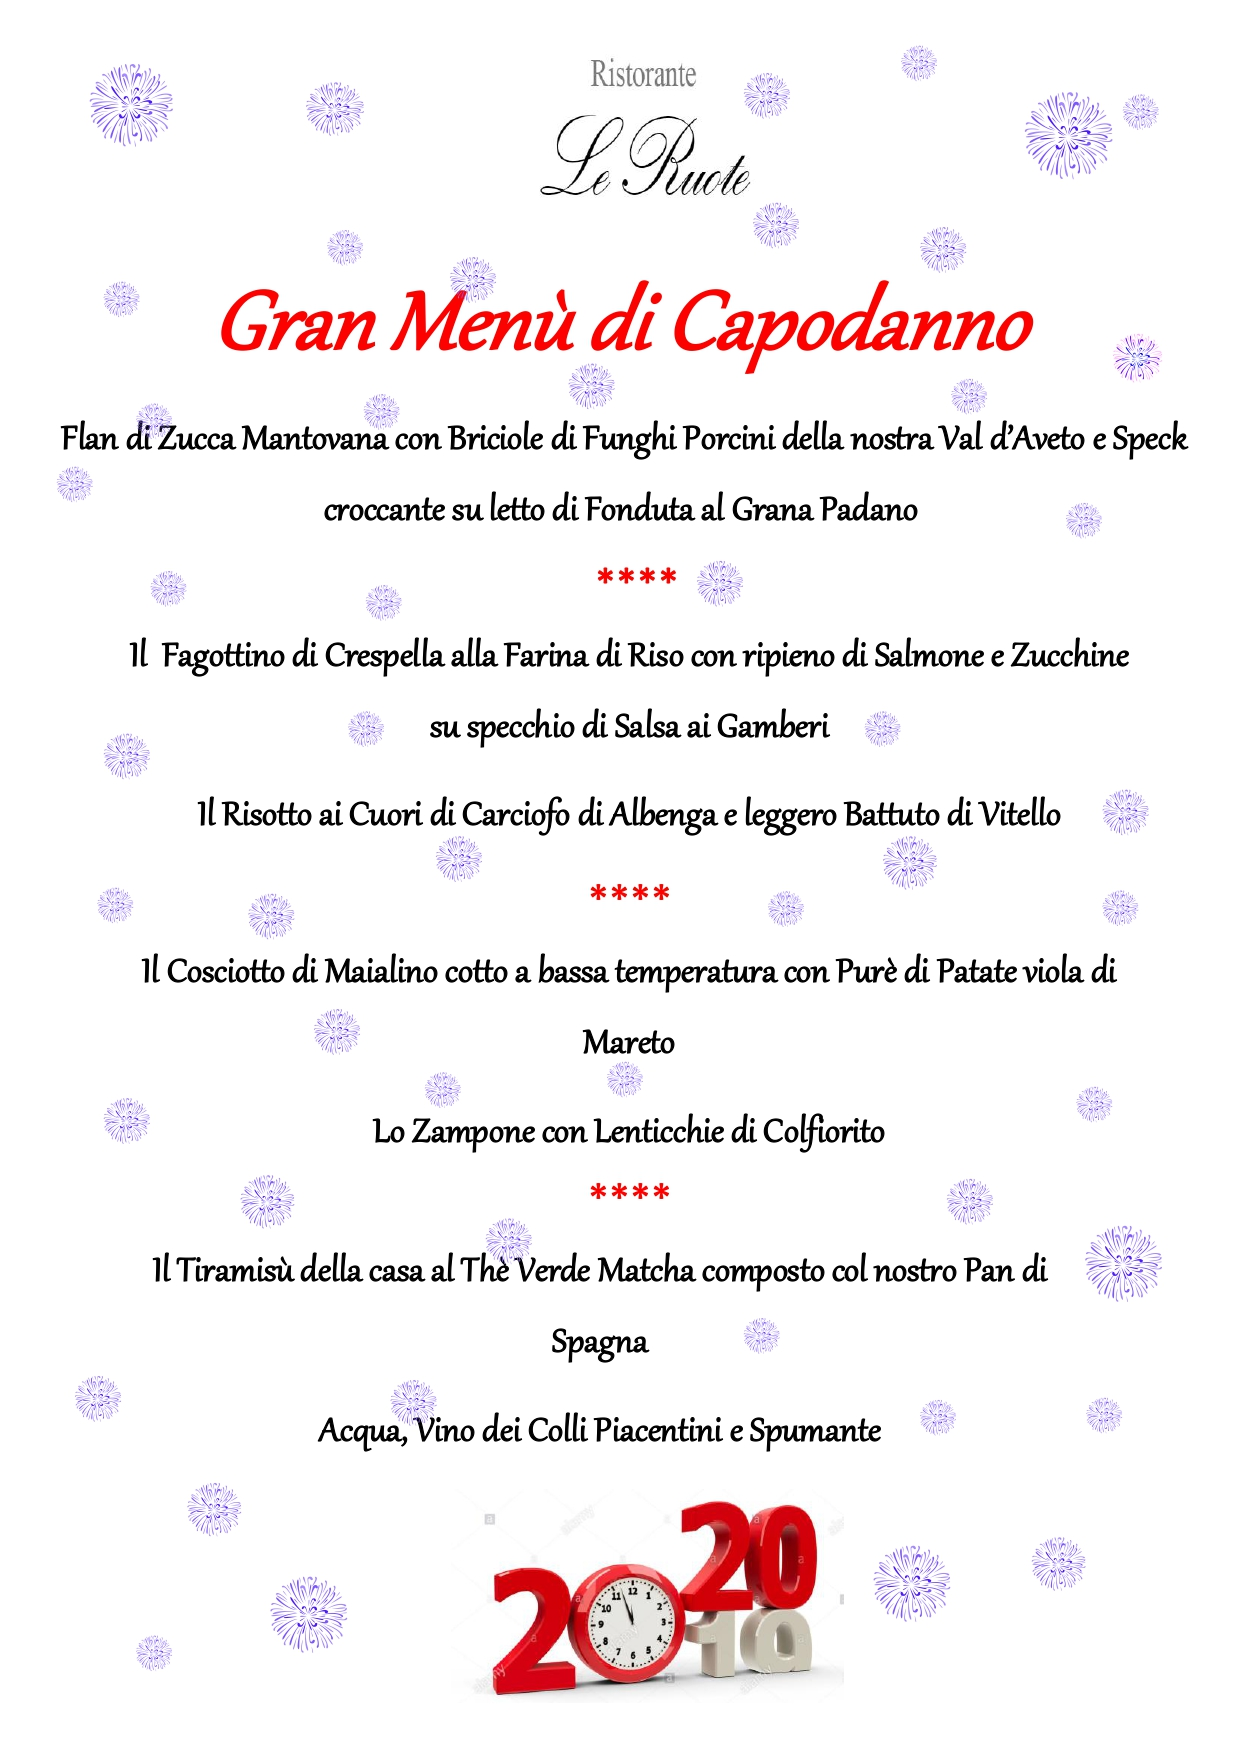 CAPODANNO-SITO-HOTEL-2020_pages-to-jpg-0002